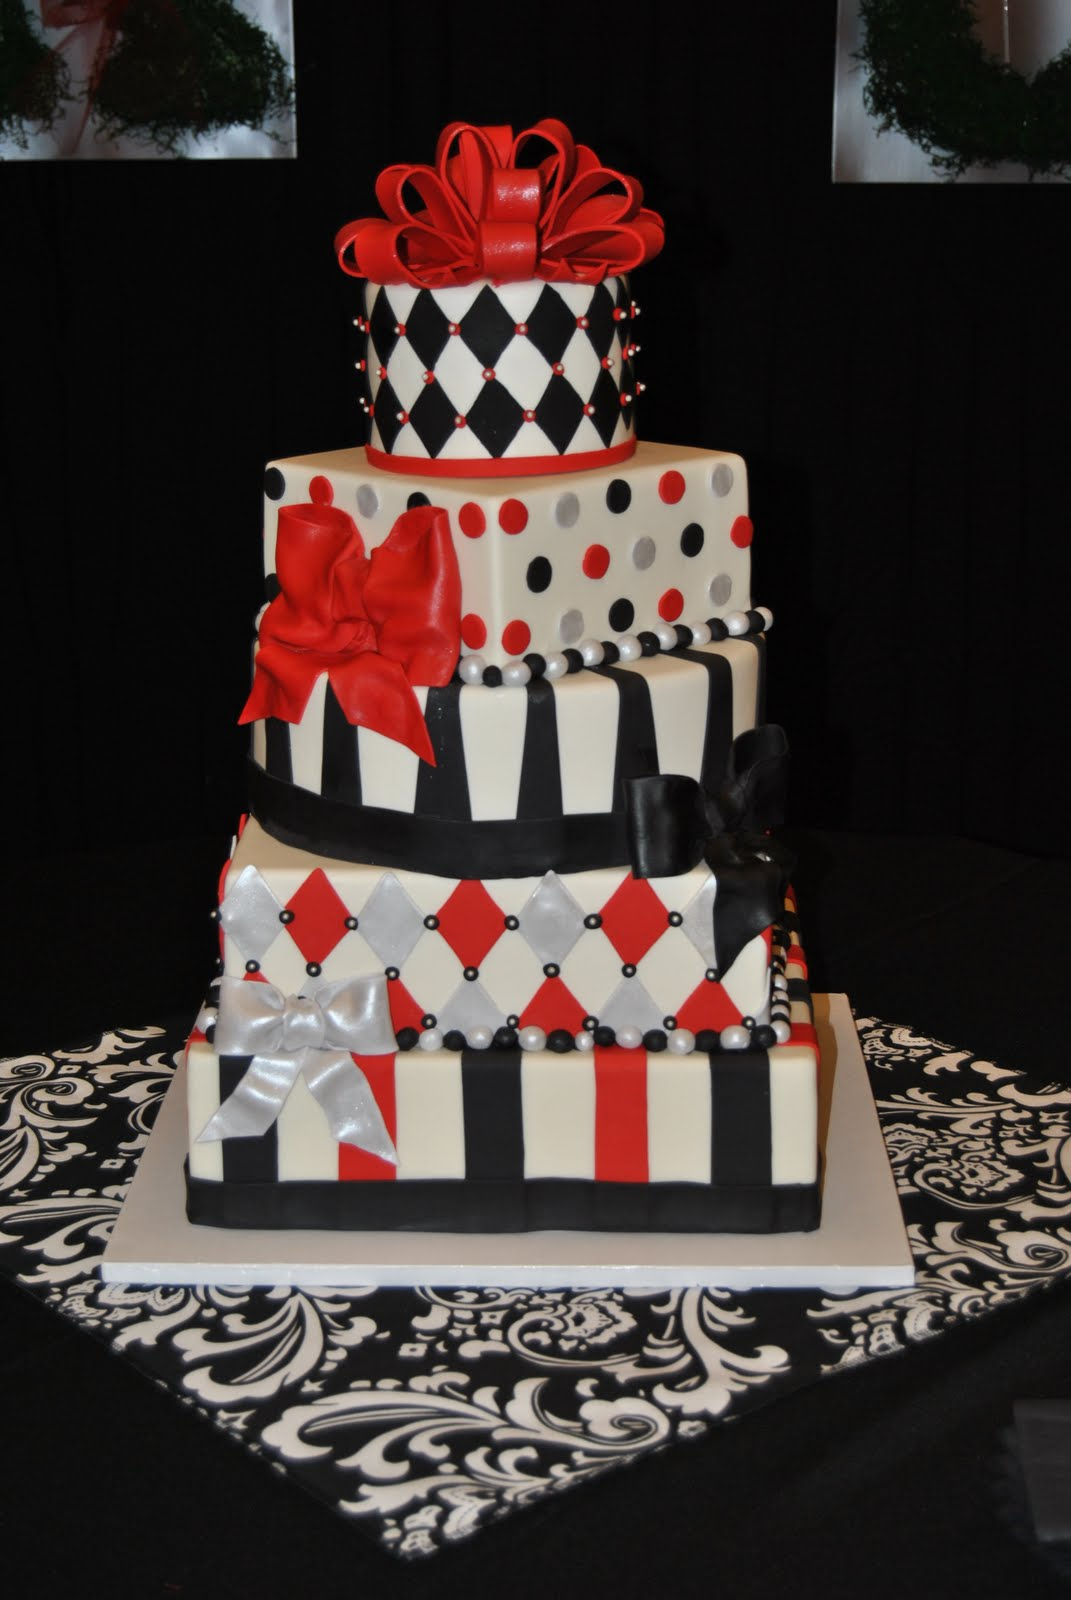 SASSY CAKES Your Fondant Cake Design Destination August